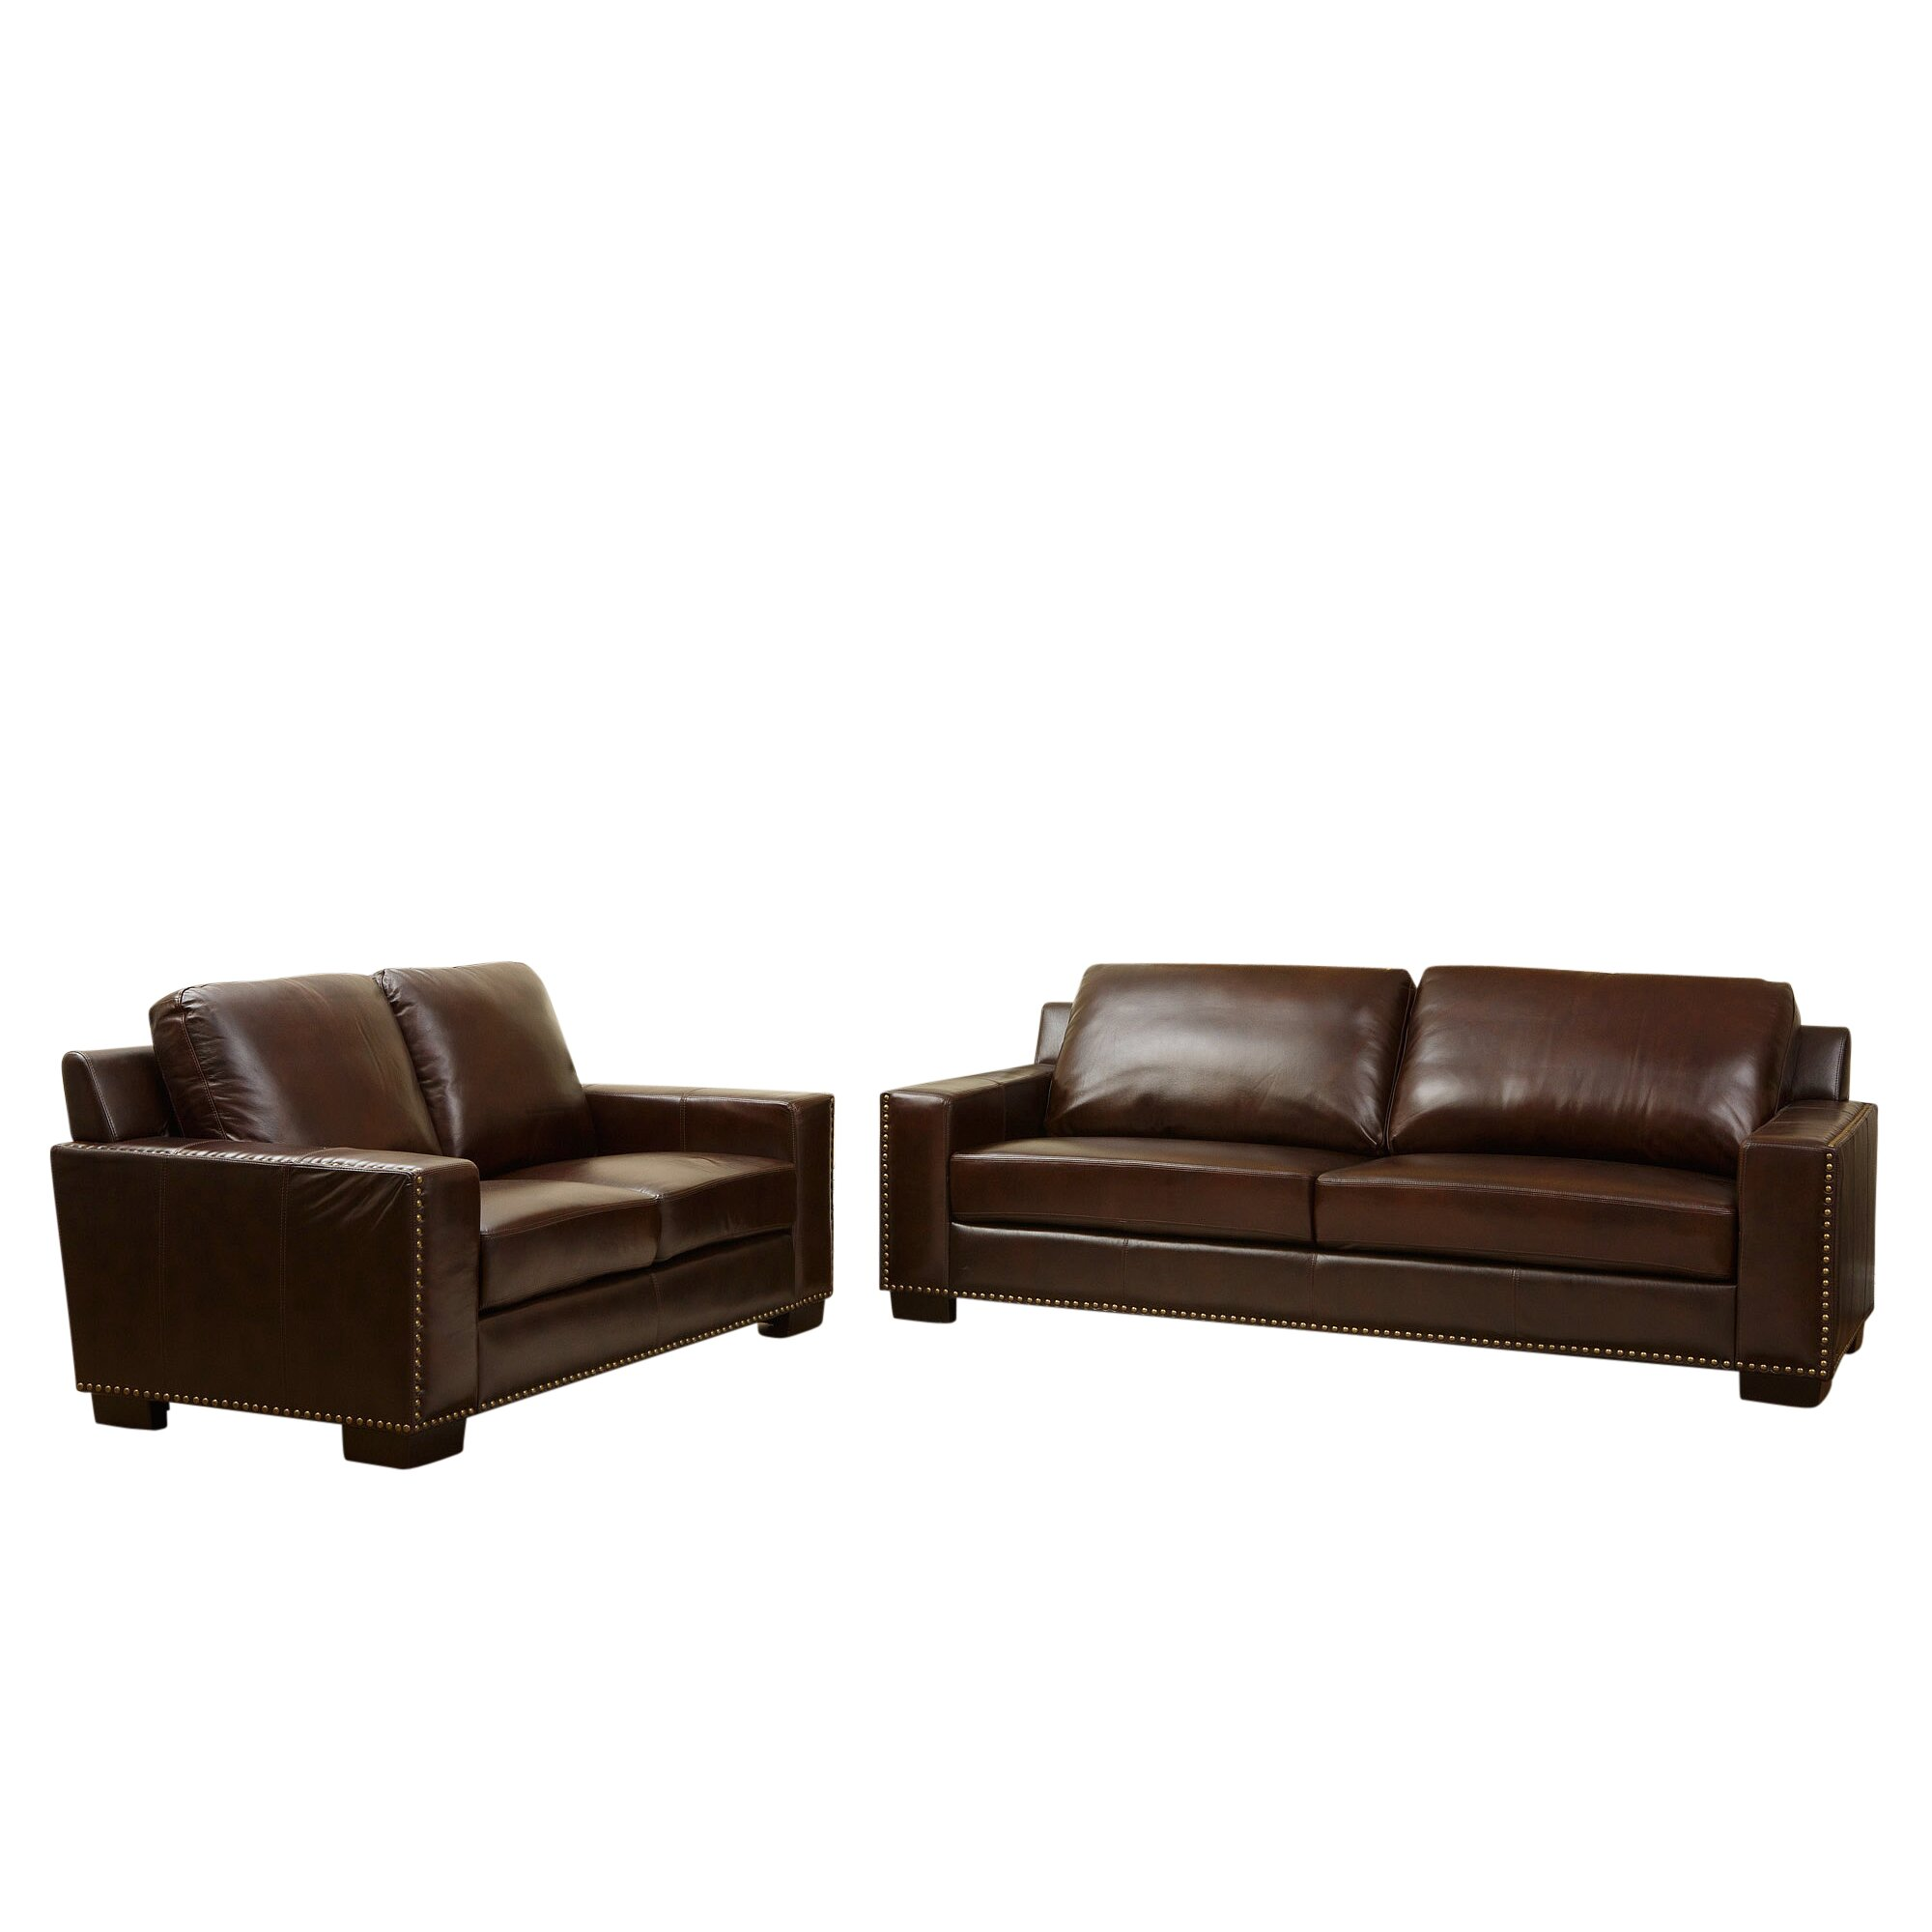 Darby Home Co William Leather Sofa And Loveseat Set Reviews Wayfair